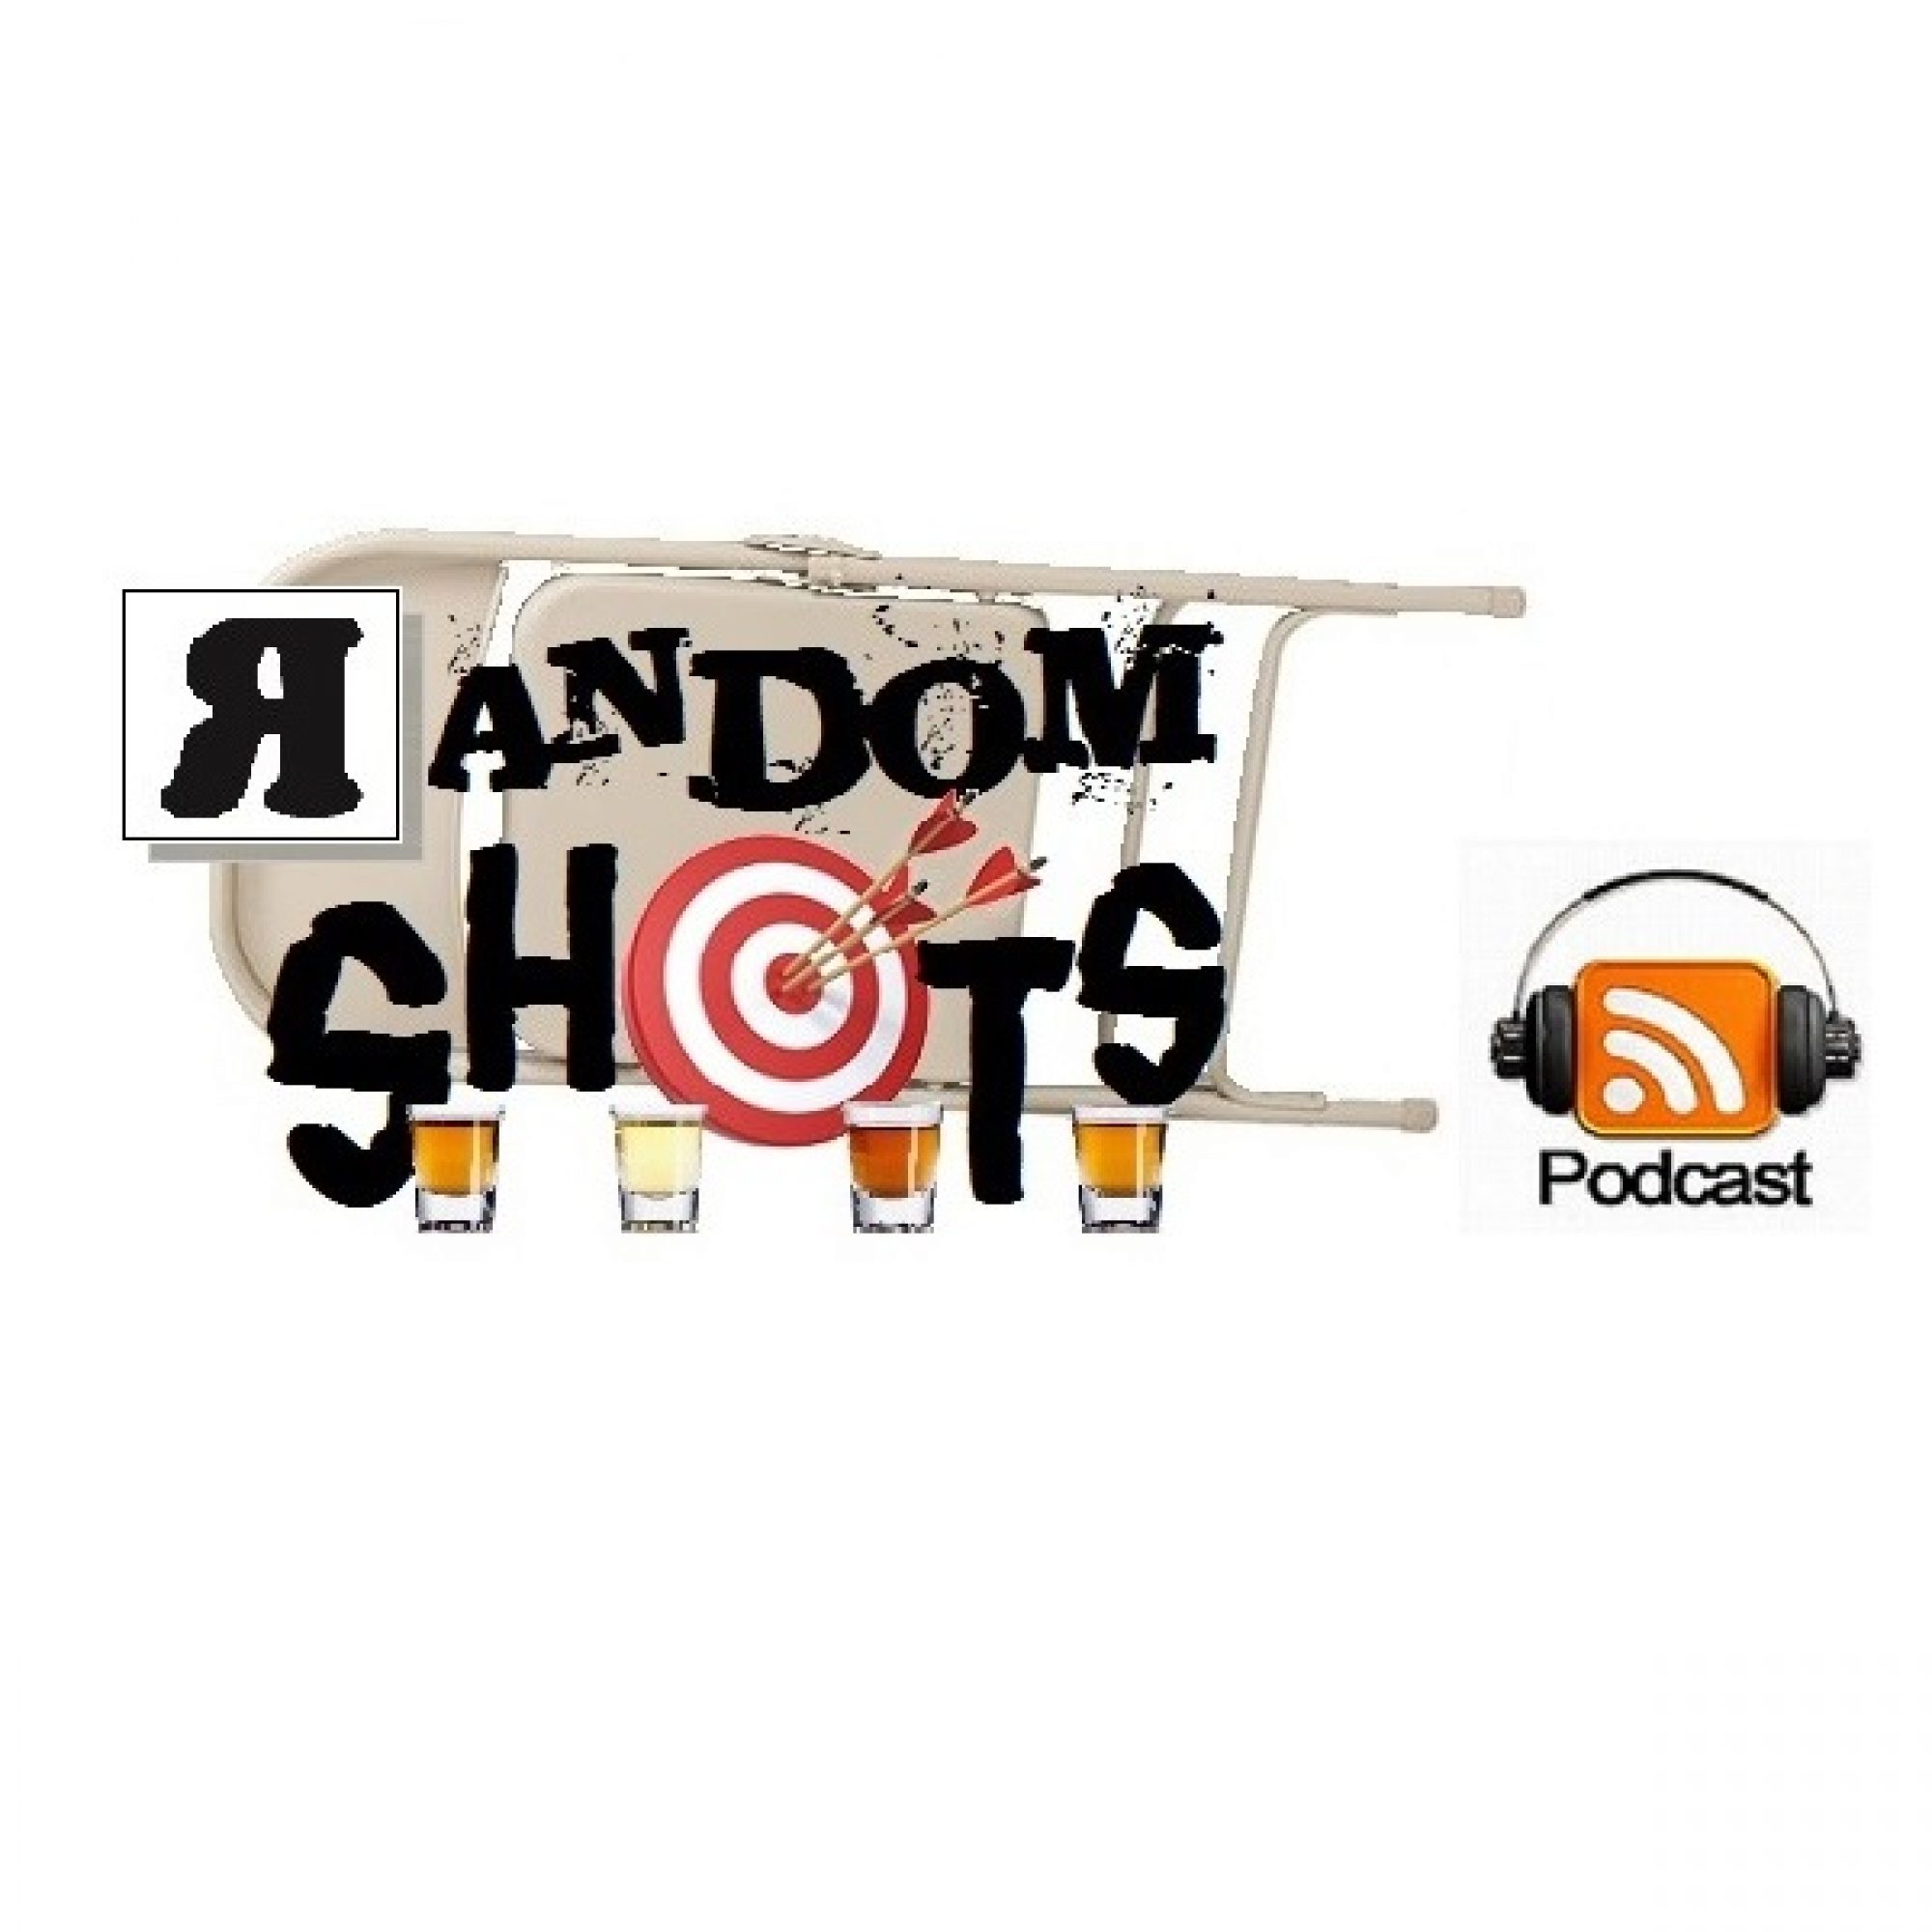 Random Shots podcast